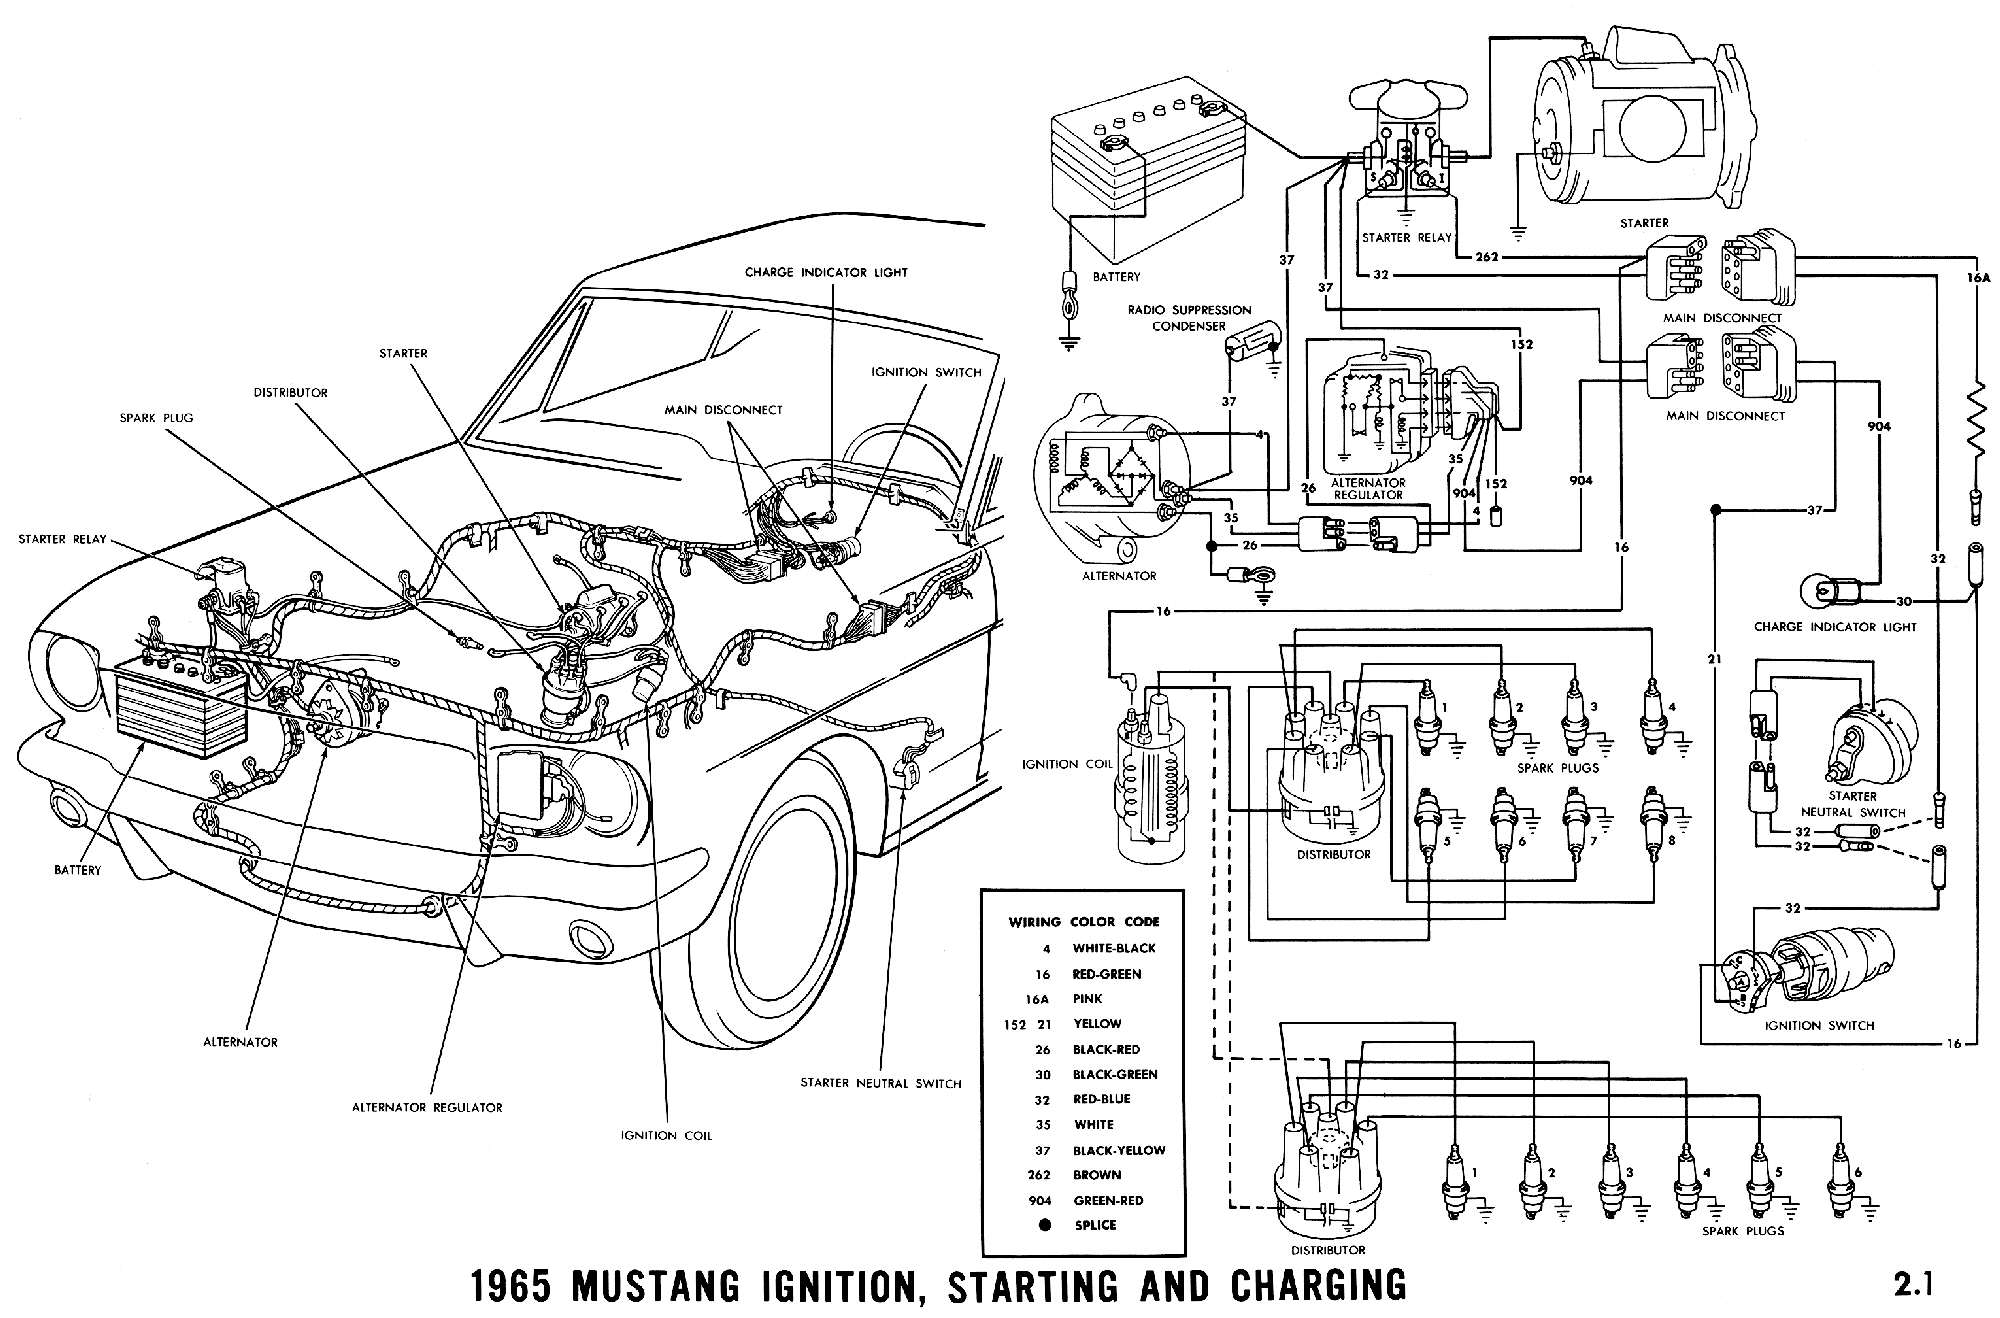 1965c 1965 mustang wiring diagrams average joe restoration 66 mustang wiring diagram at eliteediting.co